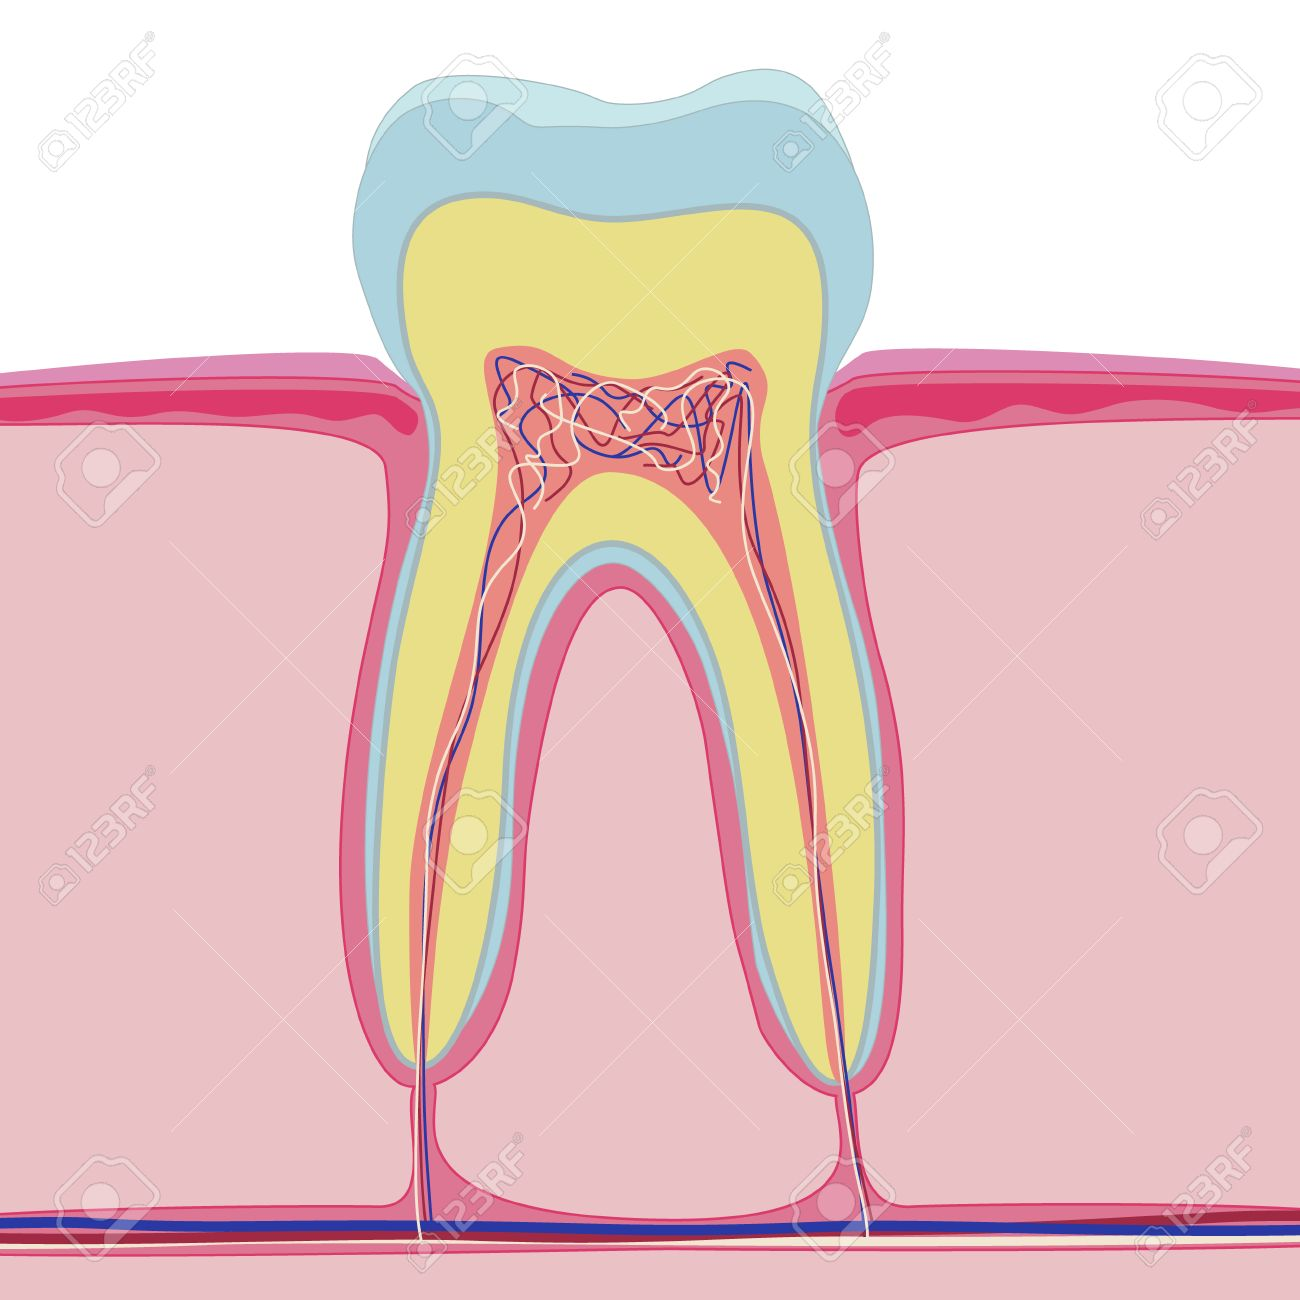 Vector Structure Of Human Tooth Isolated Anatomy On White